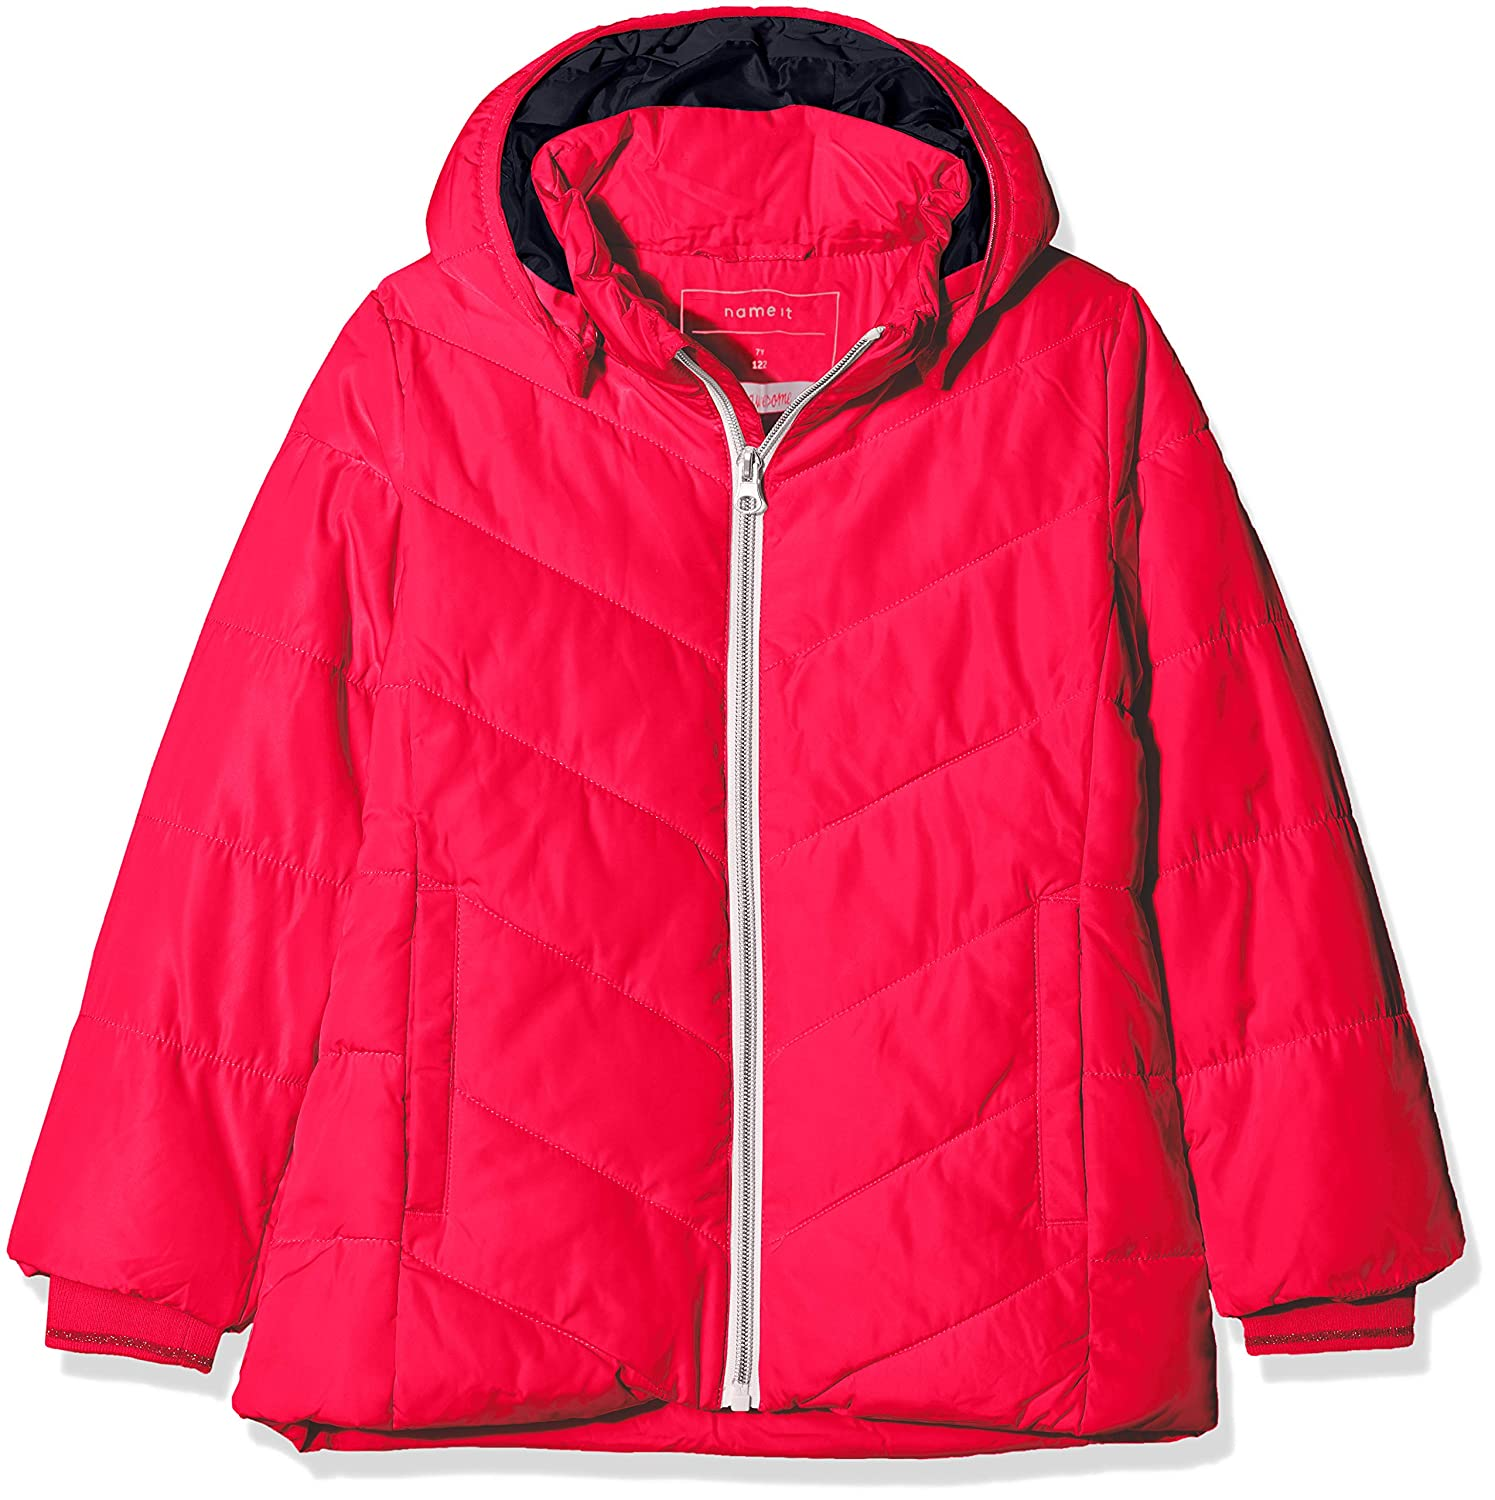 NAME IT Nmfmil Puffer Jacket Camp Chaqueta para Beb/és